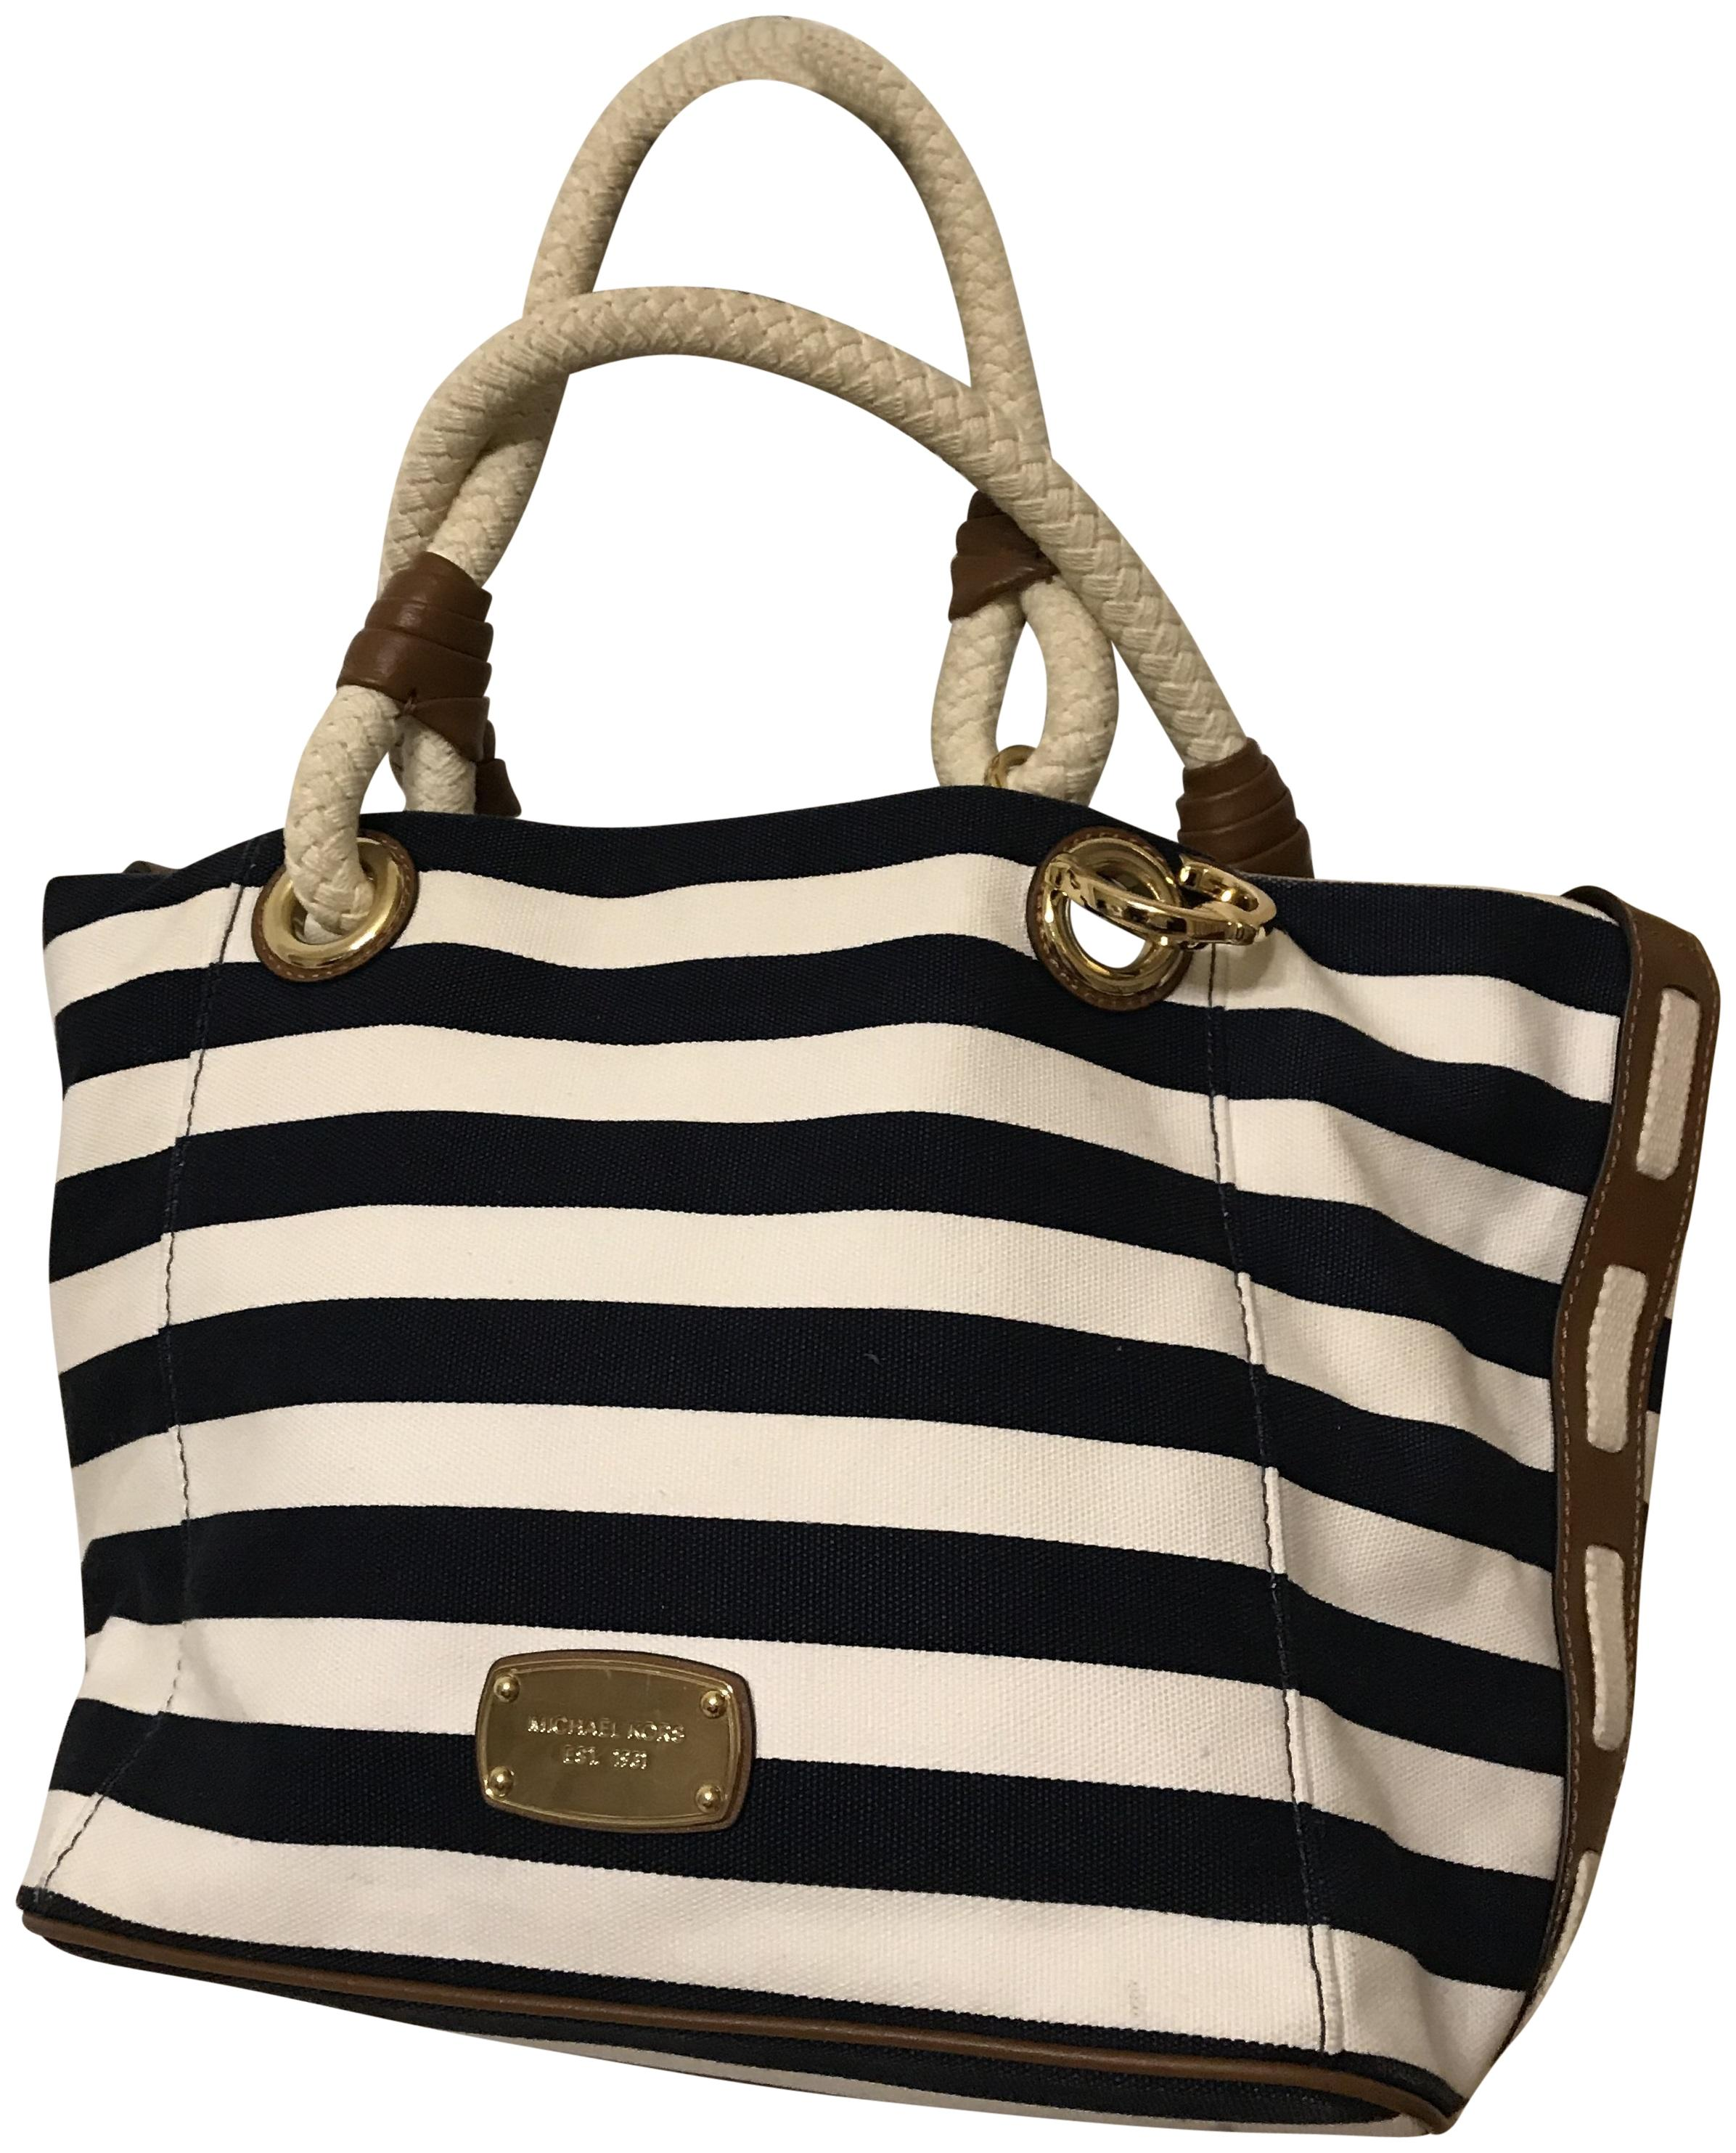 9847c1173714 ... cheap michael kors marina bags up to 70 off at tradesy 59ce0 a2d13